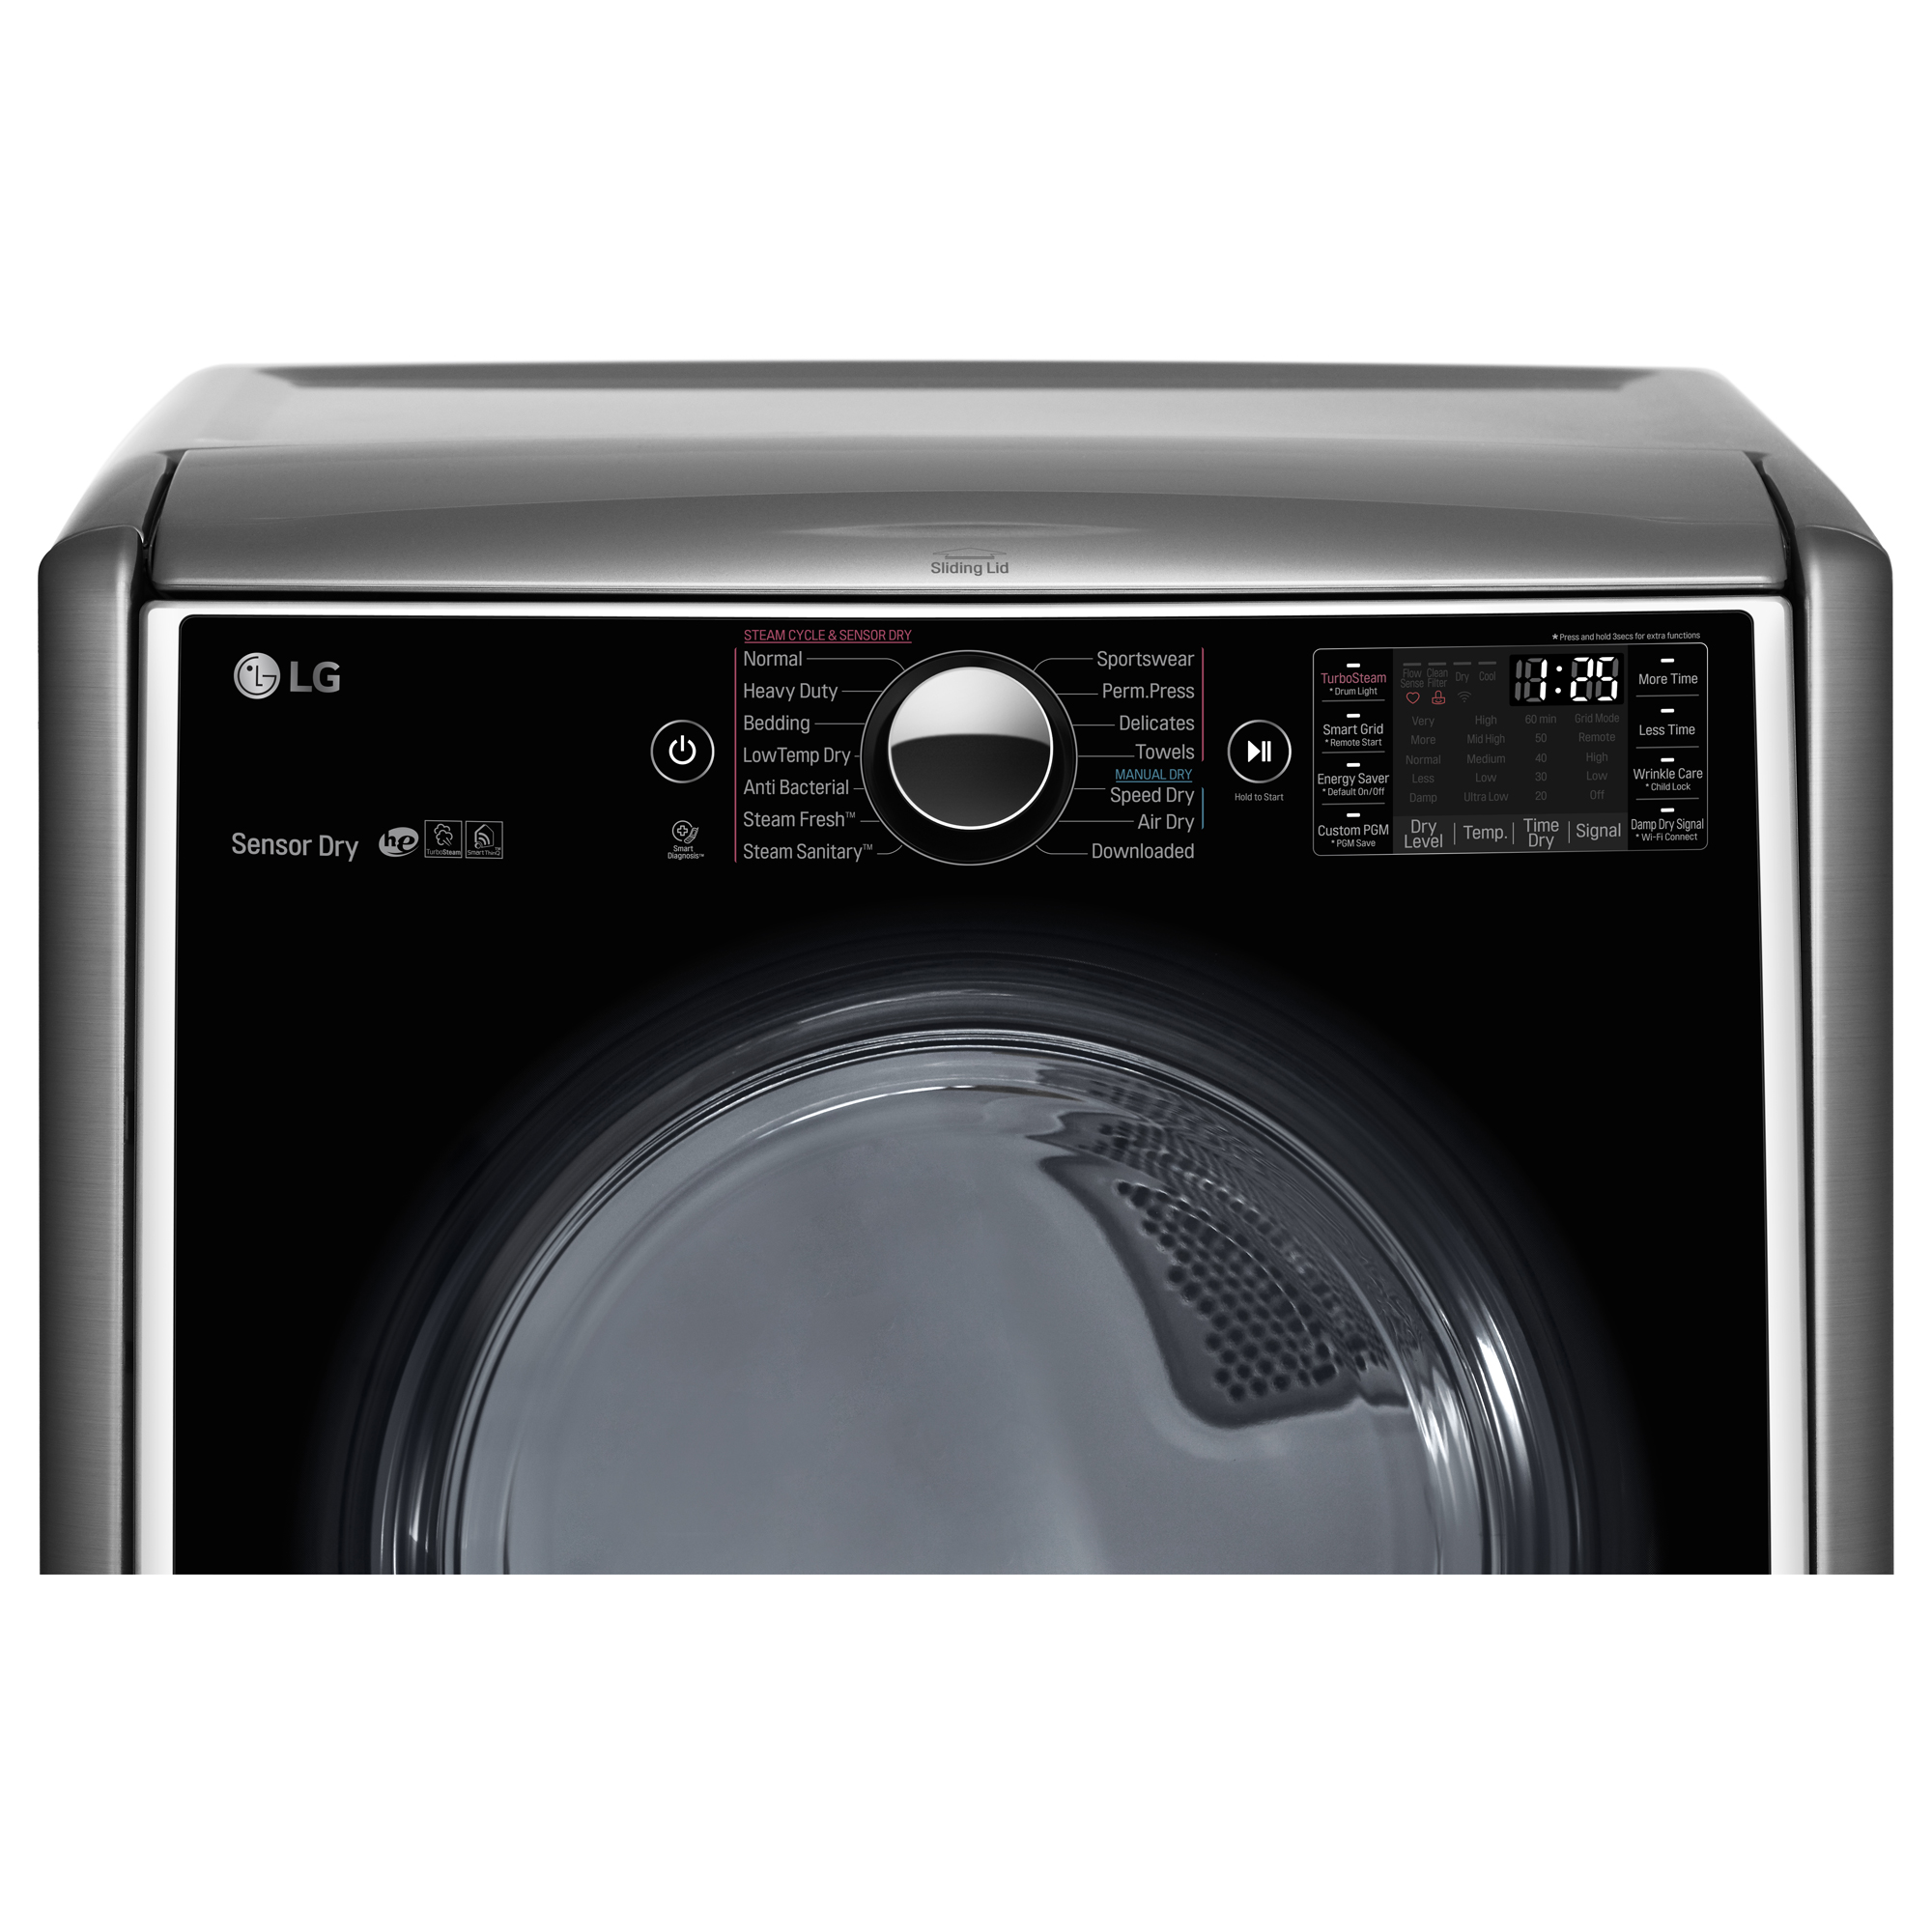 LG DLEX5000V 7.4 cu. ft. Electric Dryer w/ TurboSteam™ Technology – Graphite Steel